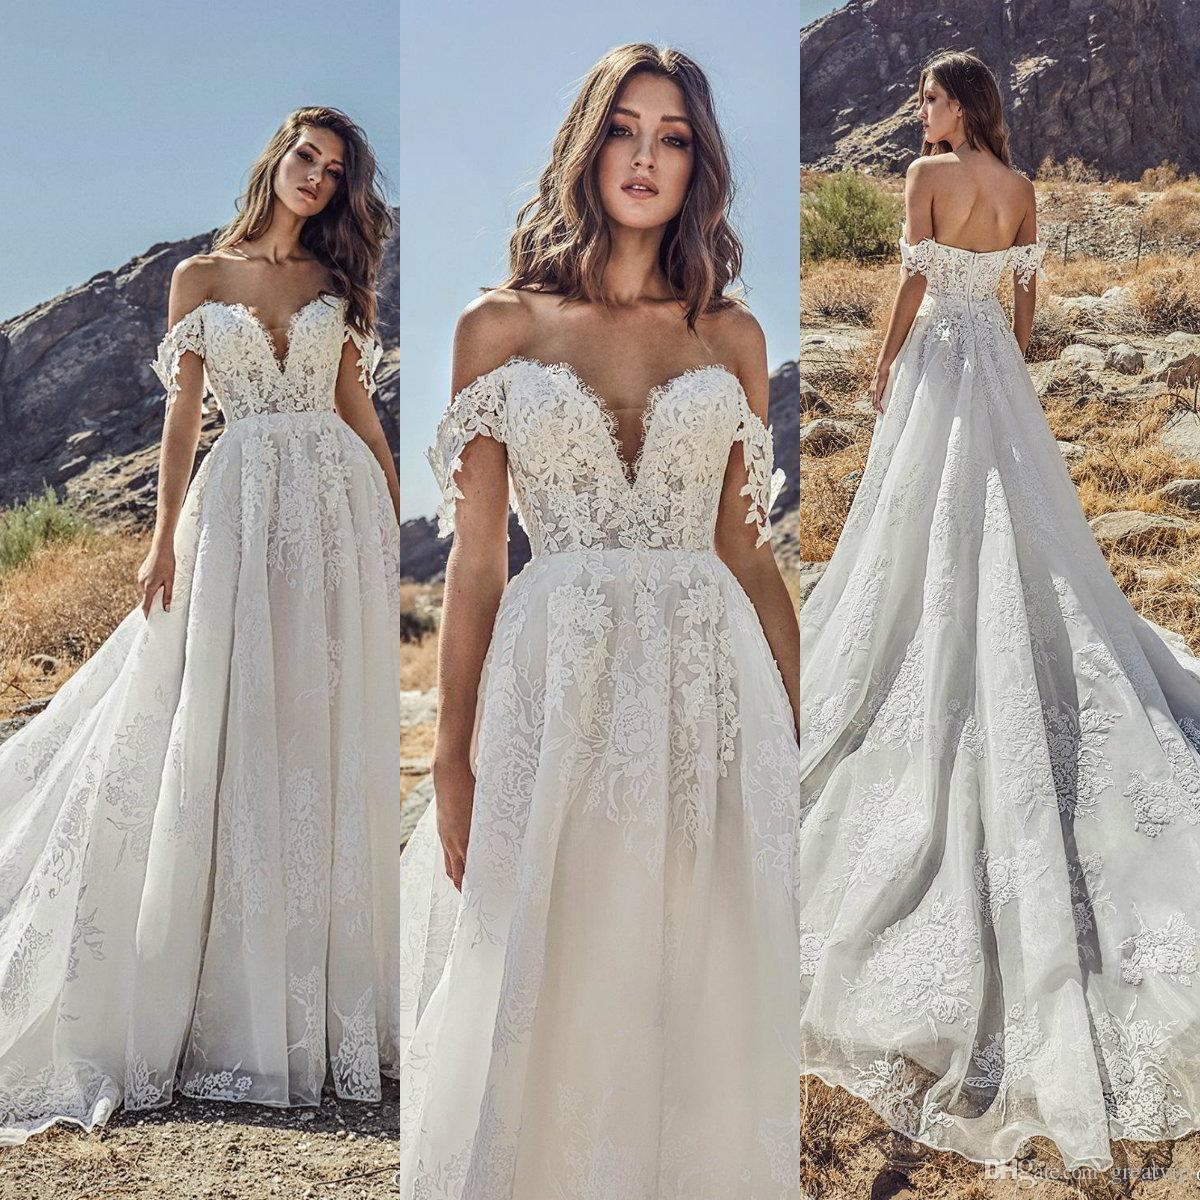 072c58e60c Julie Vino 2019 Beach Wedding Dresses Off Shoulder Lace Country Sweep Train  Bridal Gowns Plus Size Bohemian Vestido De Novia